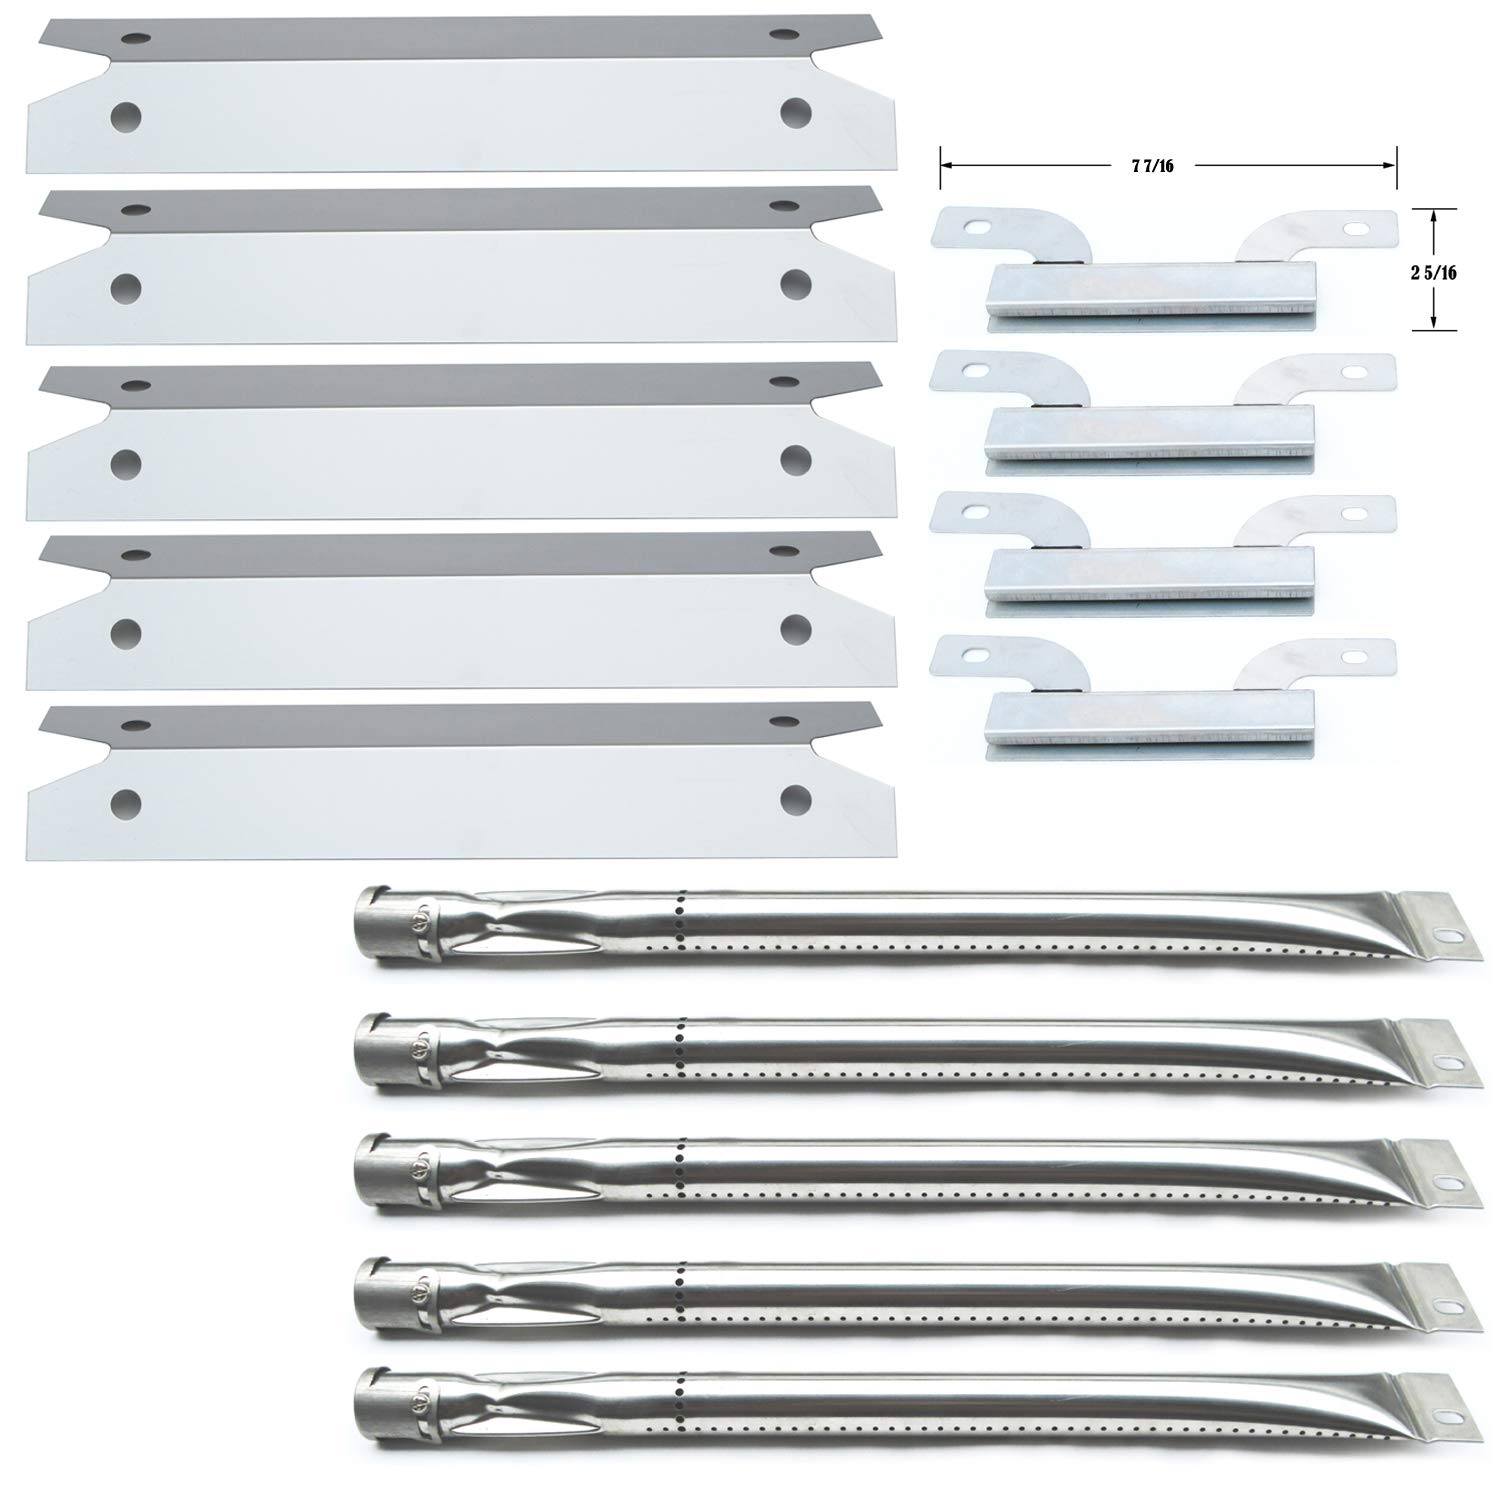 Direct store Parts Kit DG261 Replacement Gas Grill Brinkmann 810-1575-W Gas Grill Parts Kit (Stainless Steel Burner + Stainless Steel Carry-Over Tubes + Stainless Steel Heat Plate)